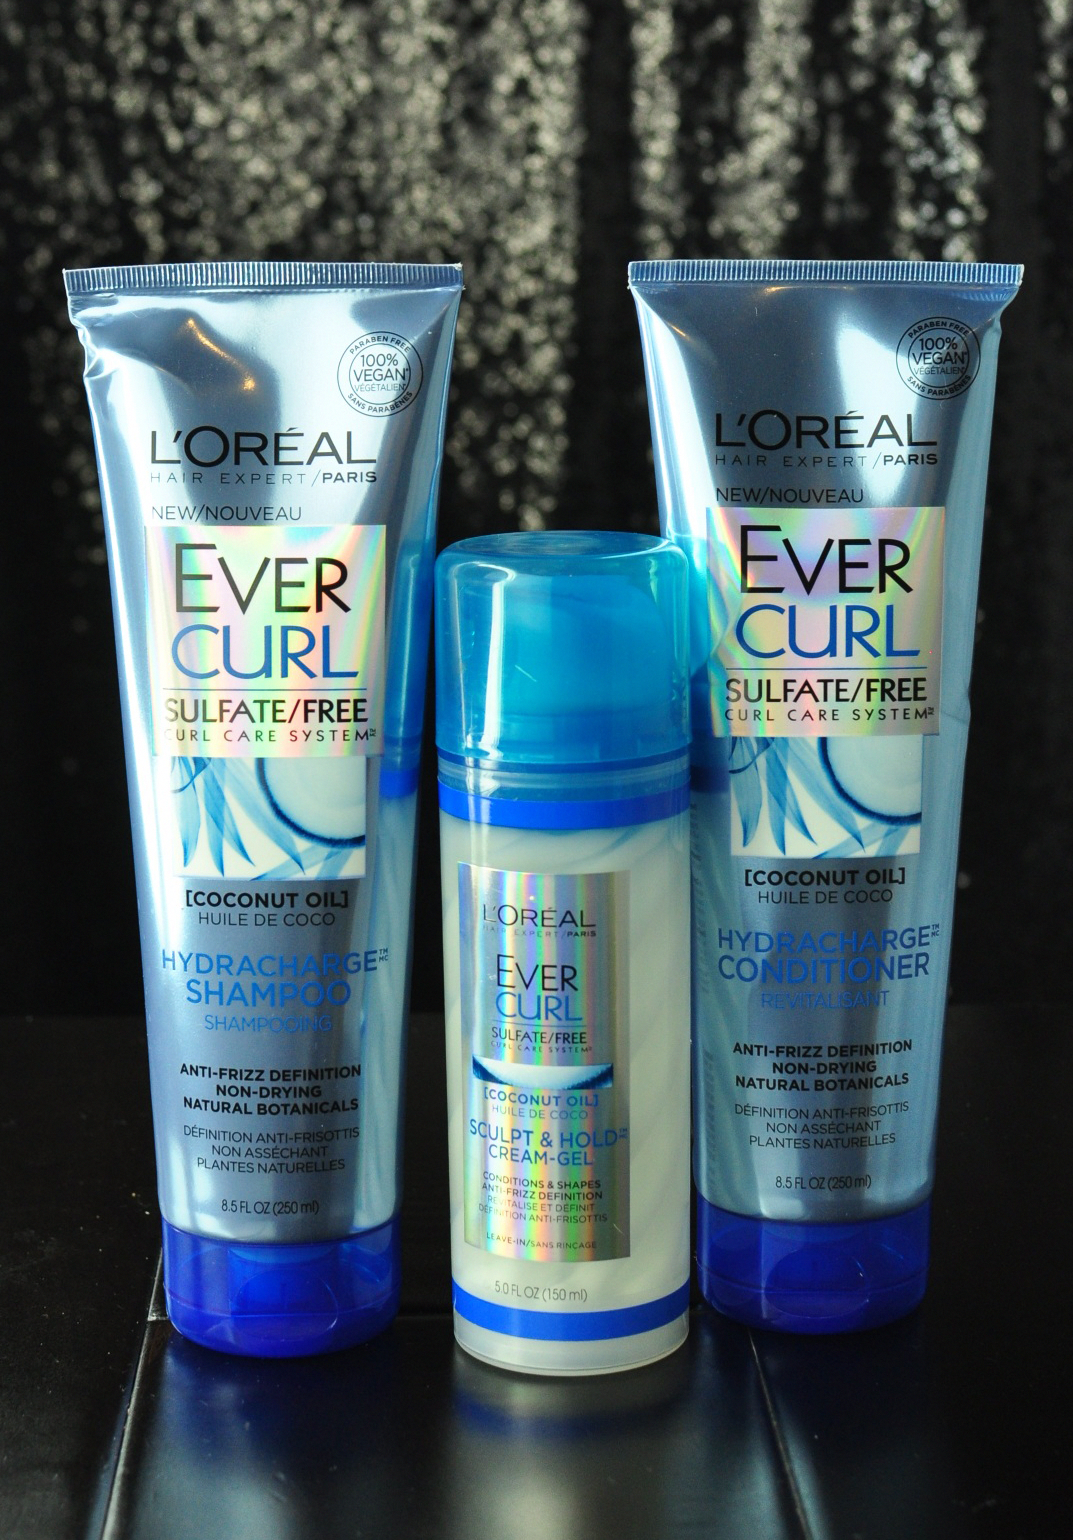 L'Oreal Ever Curl Coconut Oil Hair Care Review Coconut